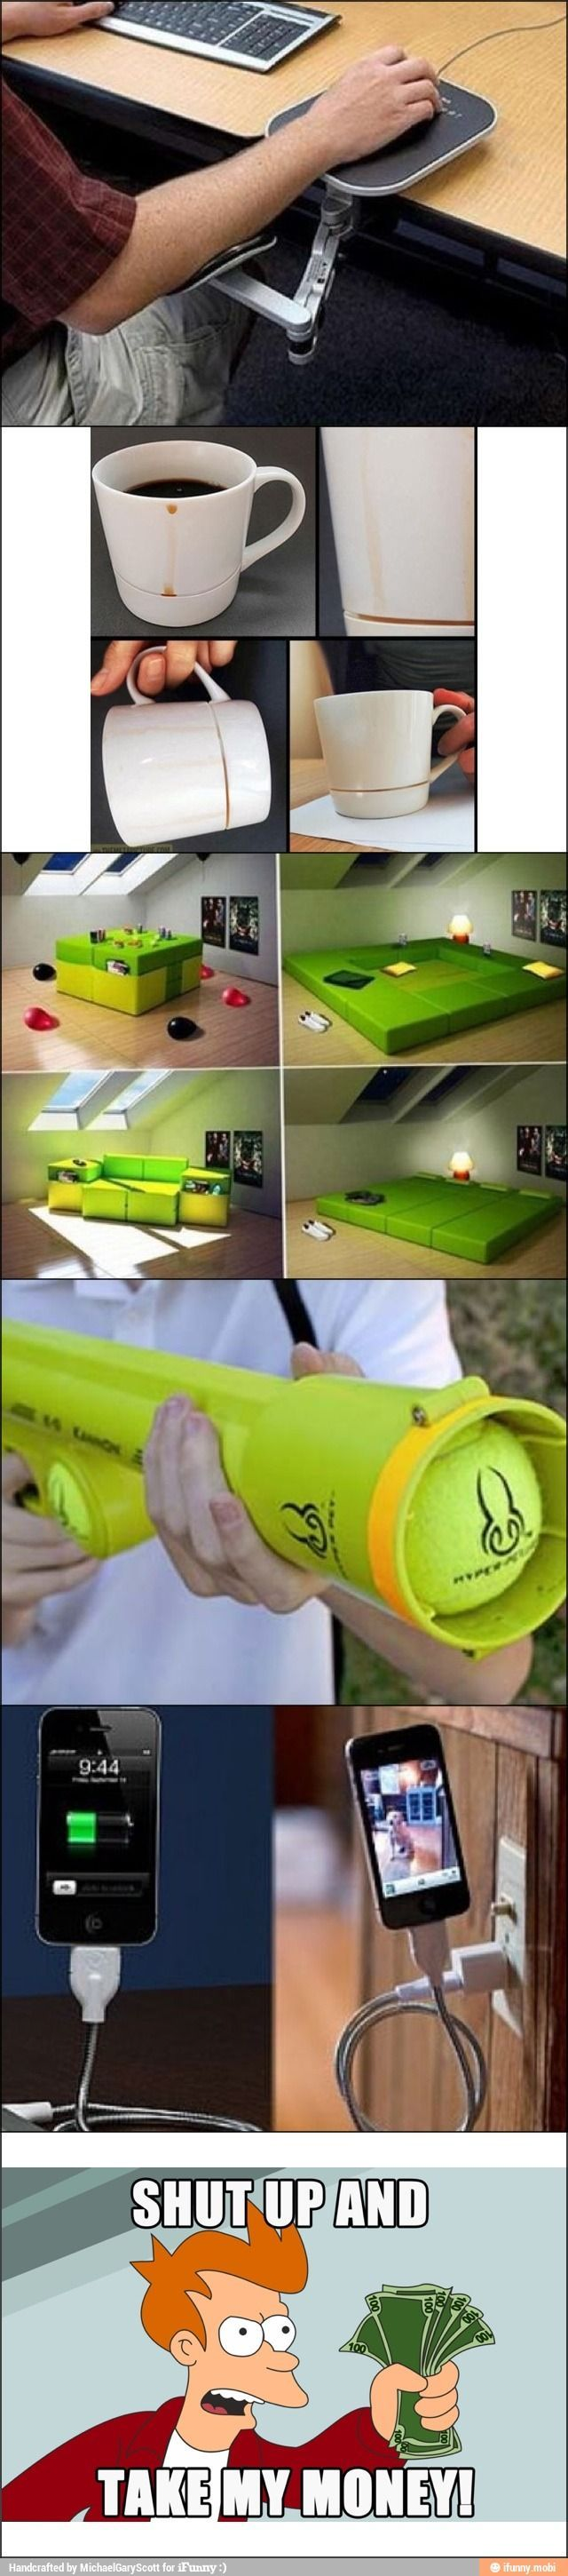 I HAVE THE TENNIS BALL LAUNCHER AND IT IS AMAZING.